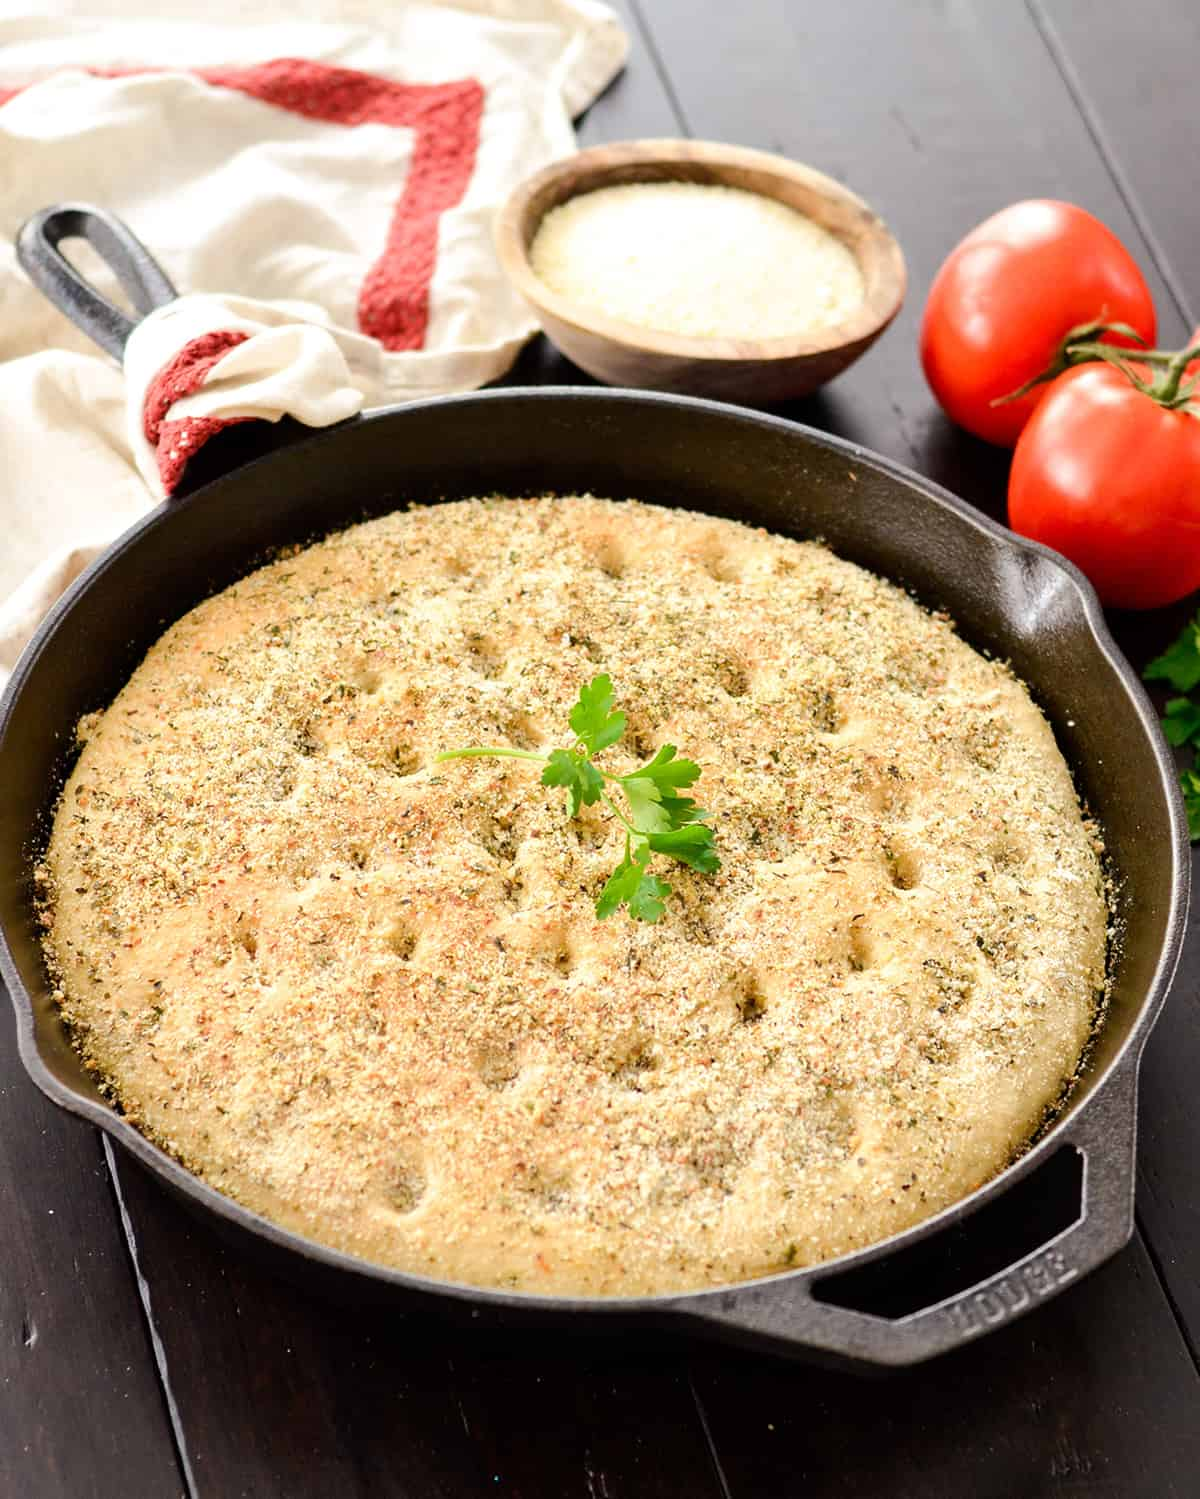 skillet with baked Whole Wheat Focaccia Bread with parsley on top